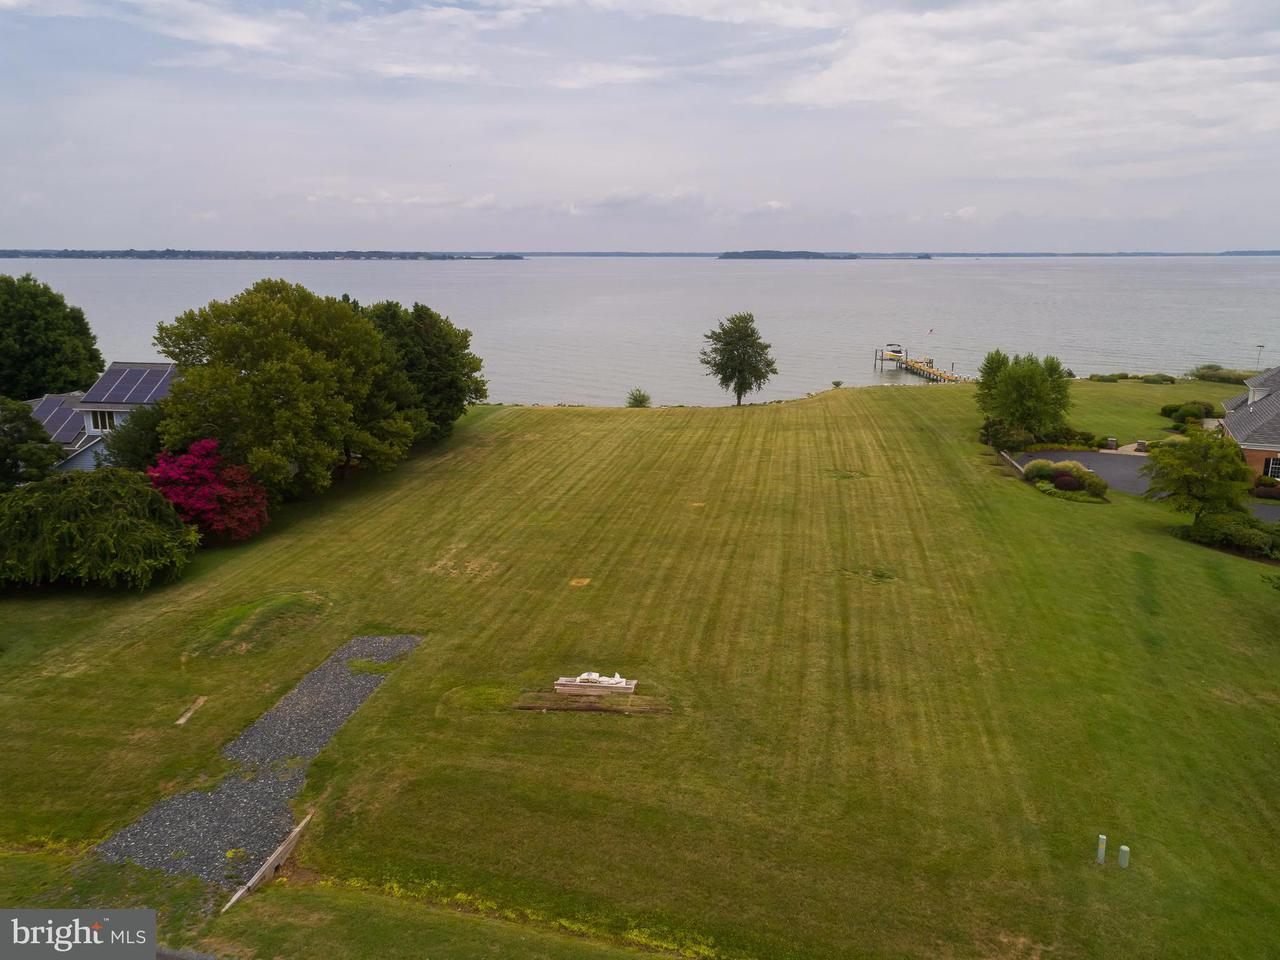 Single Family Home for Sale at 2923 COX NECK RD E 2923 COX NECK RD E Chester, Maryland 21619 United States